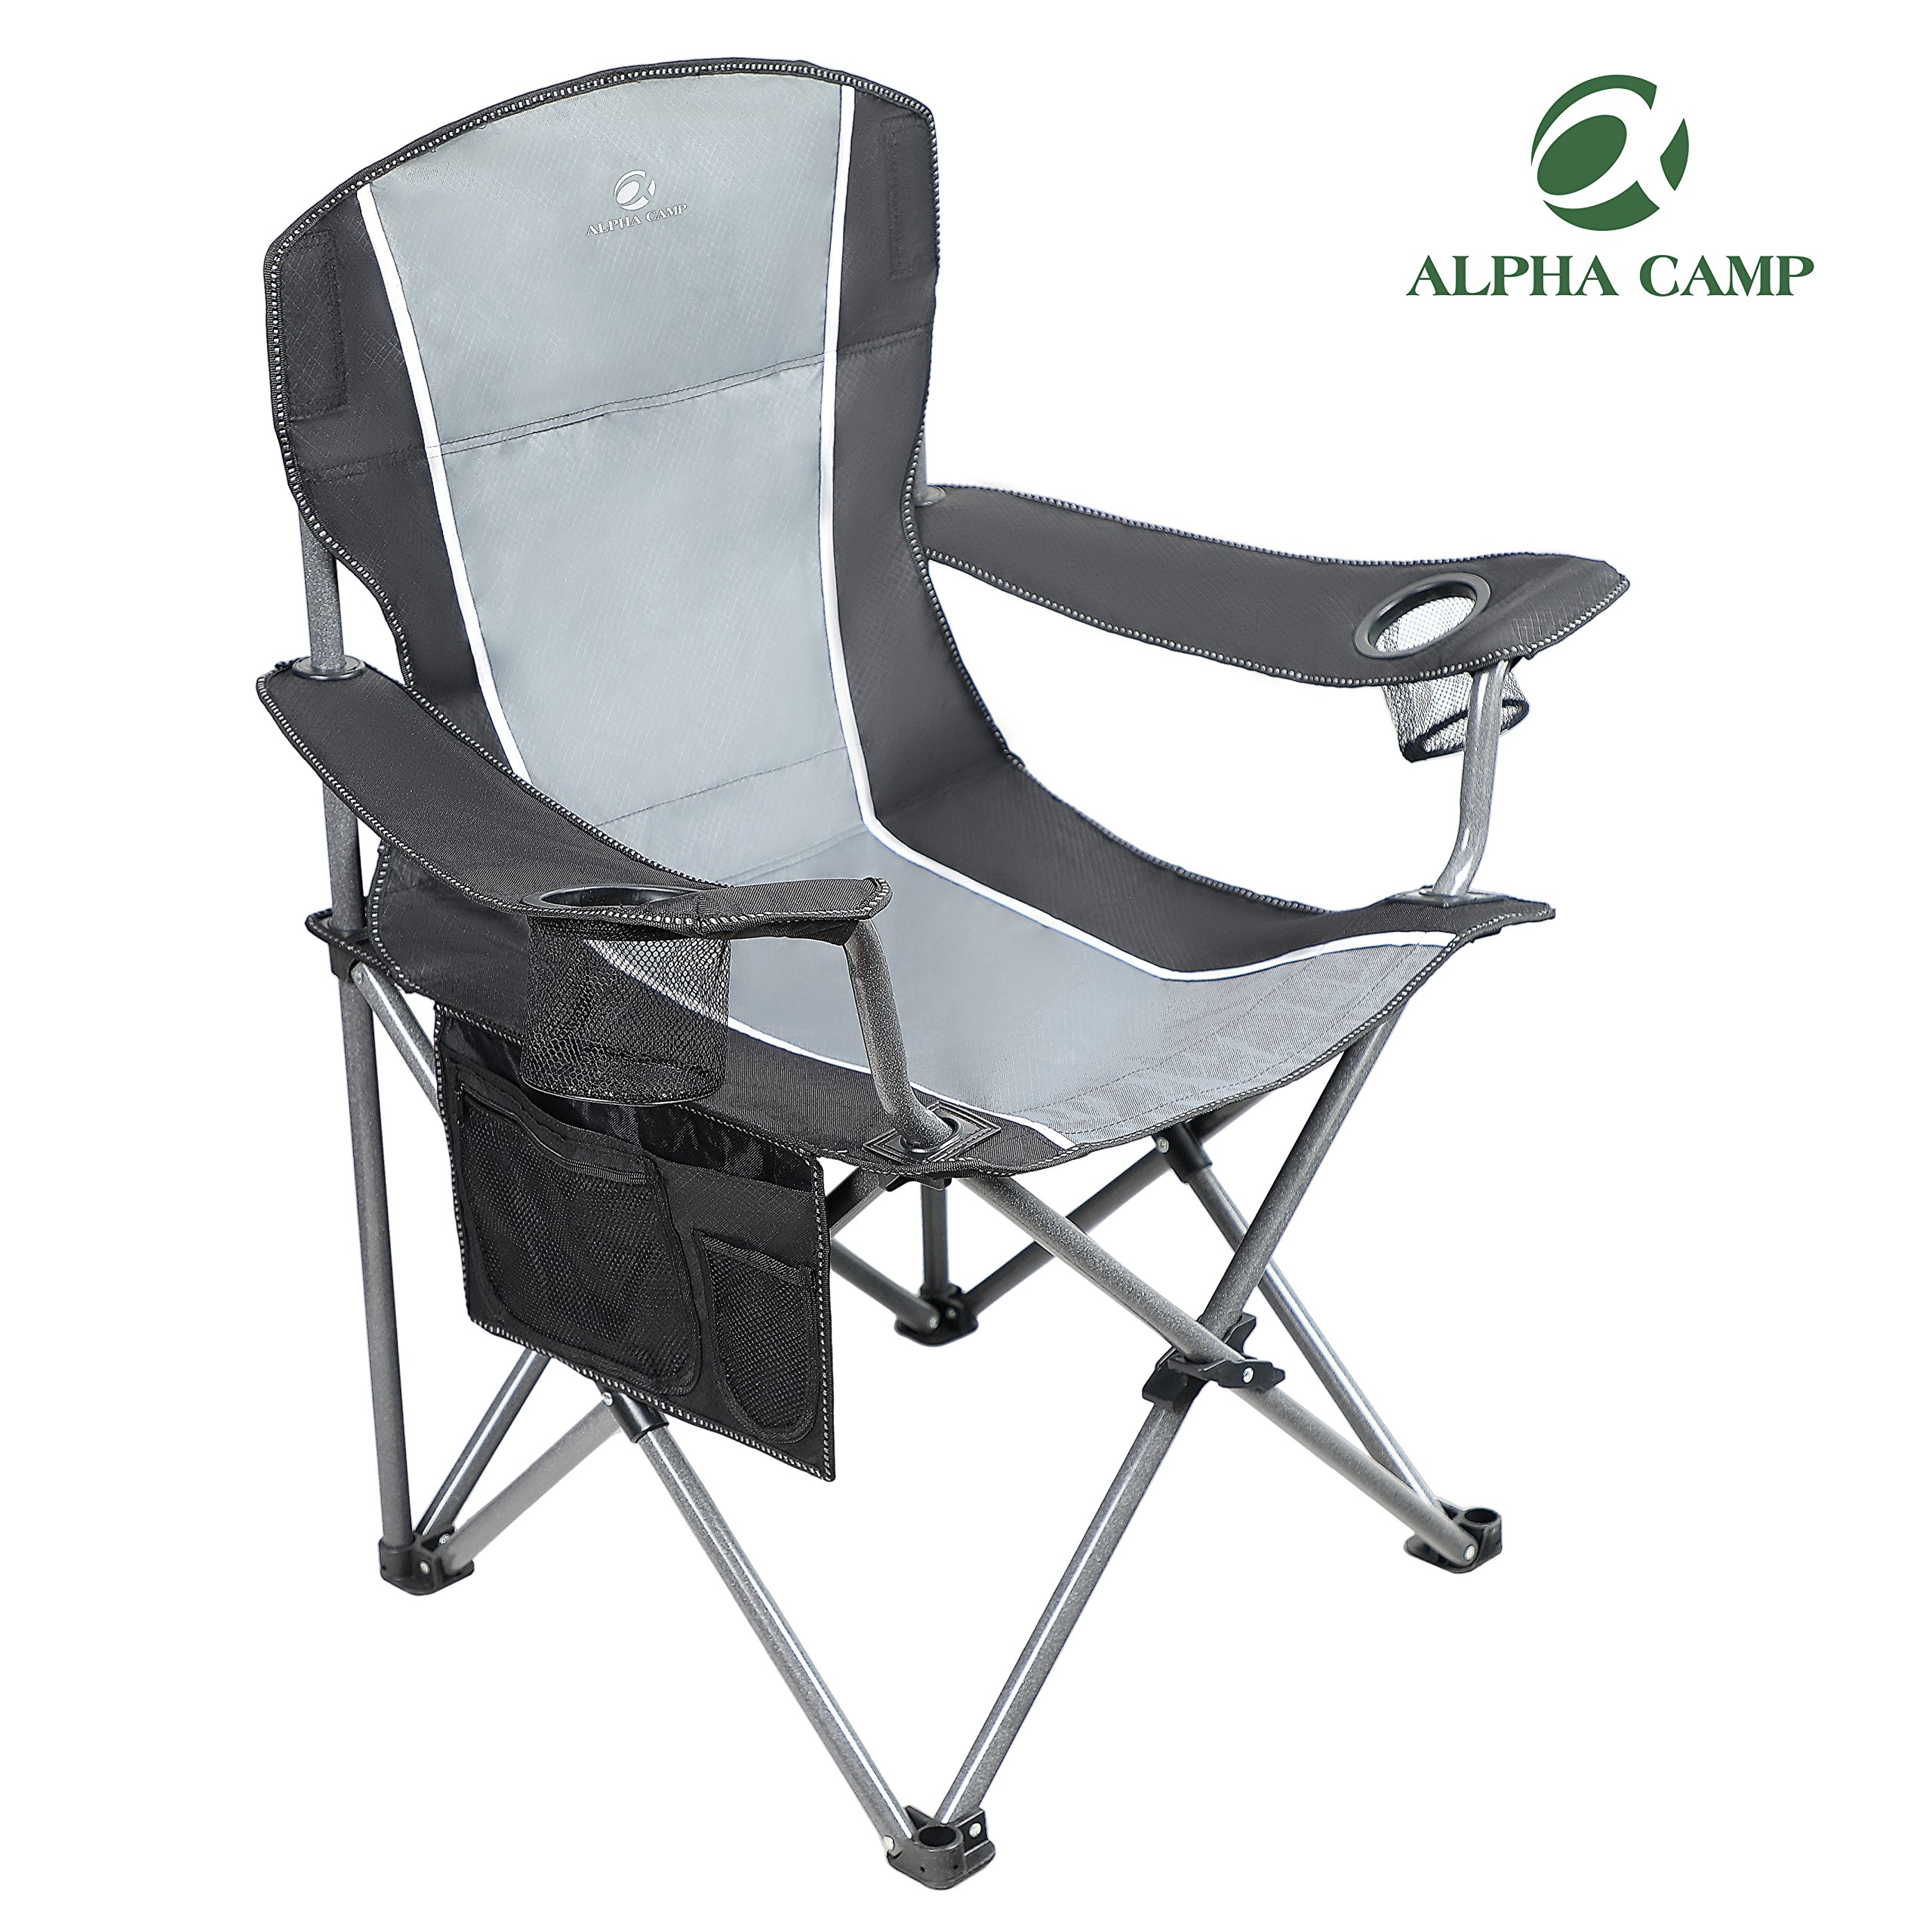 Camping Chair With Canopy Alpha Camp Shade Canopy Chair Folding Camping Chair Support 350